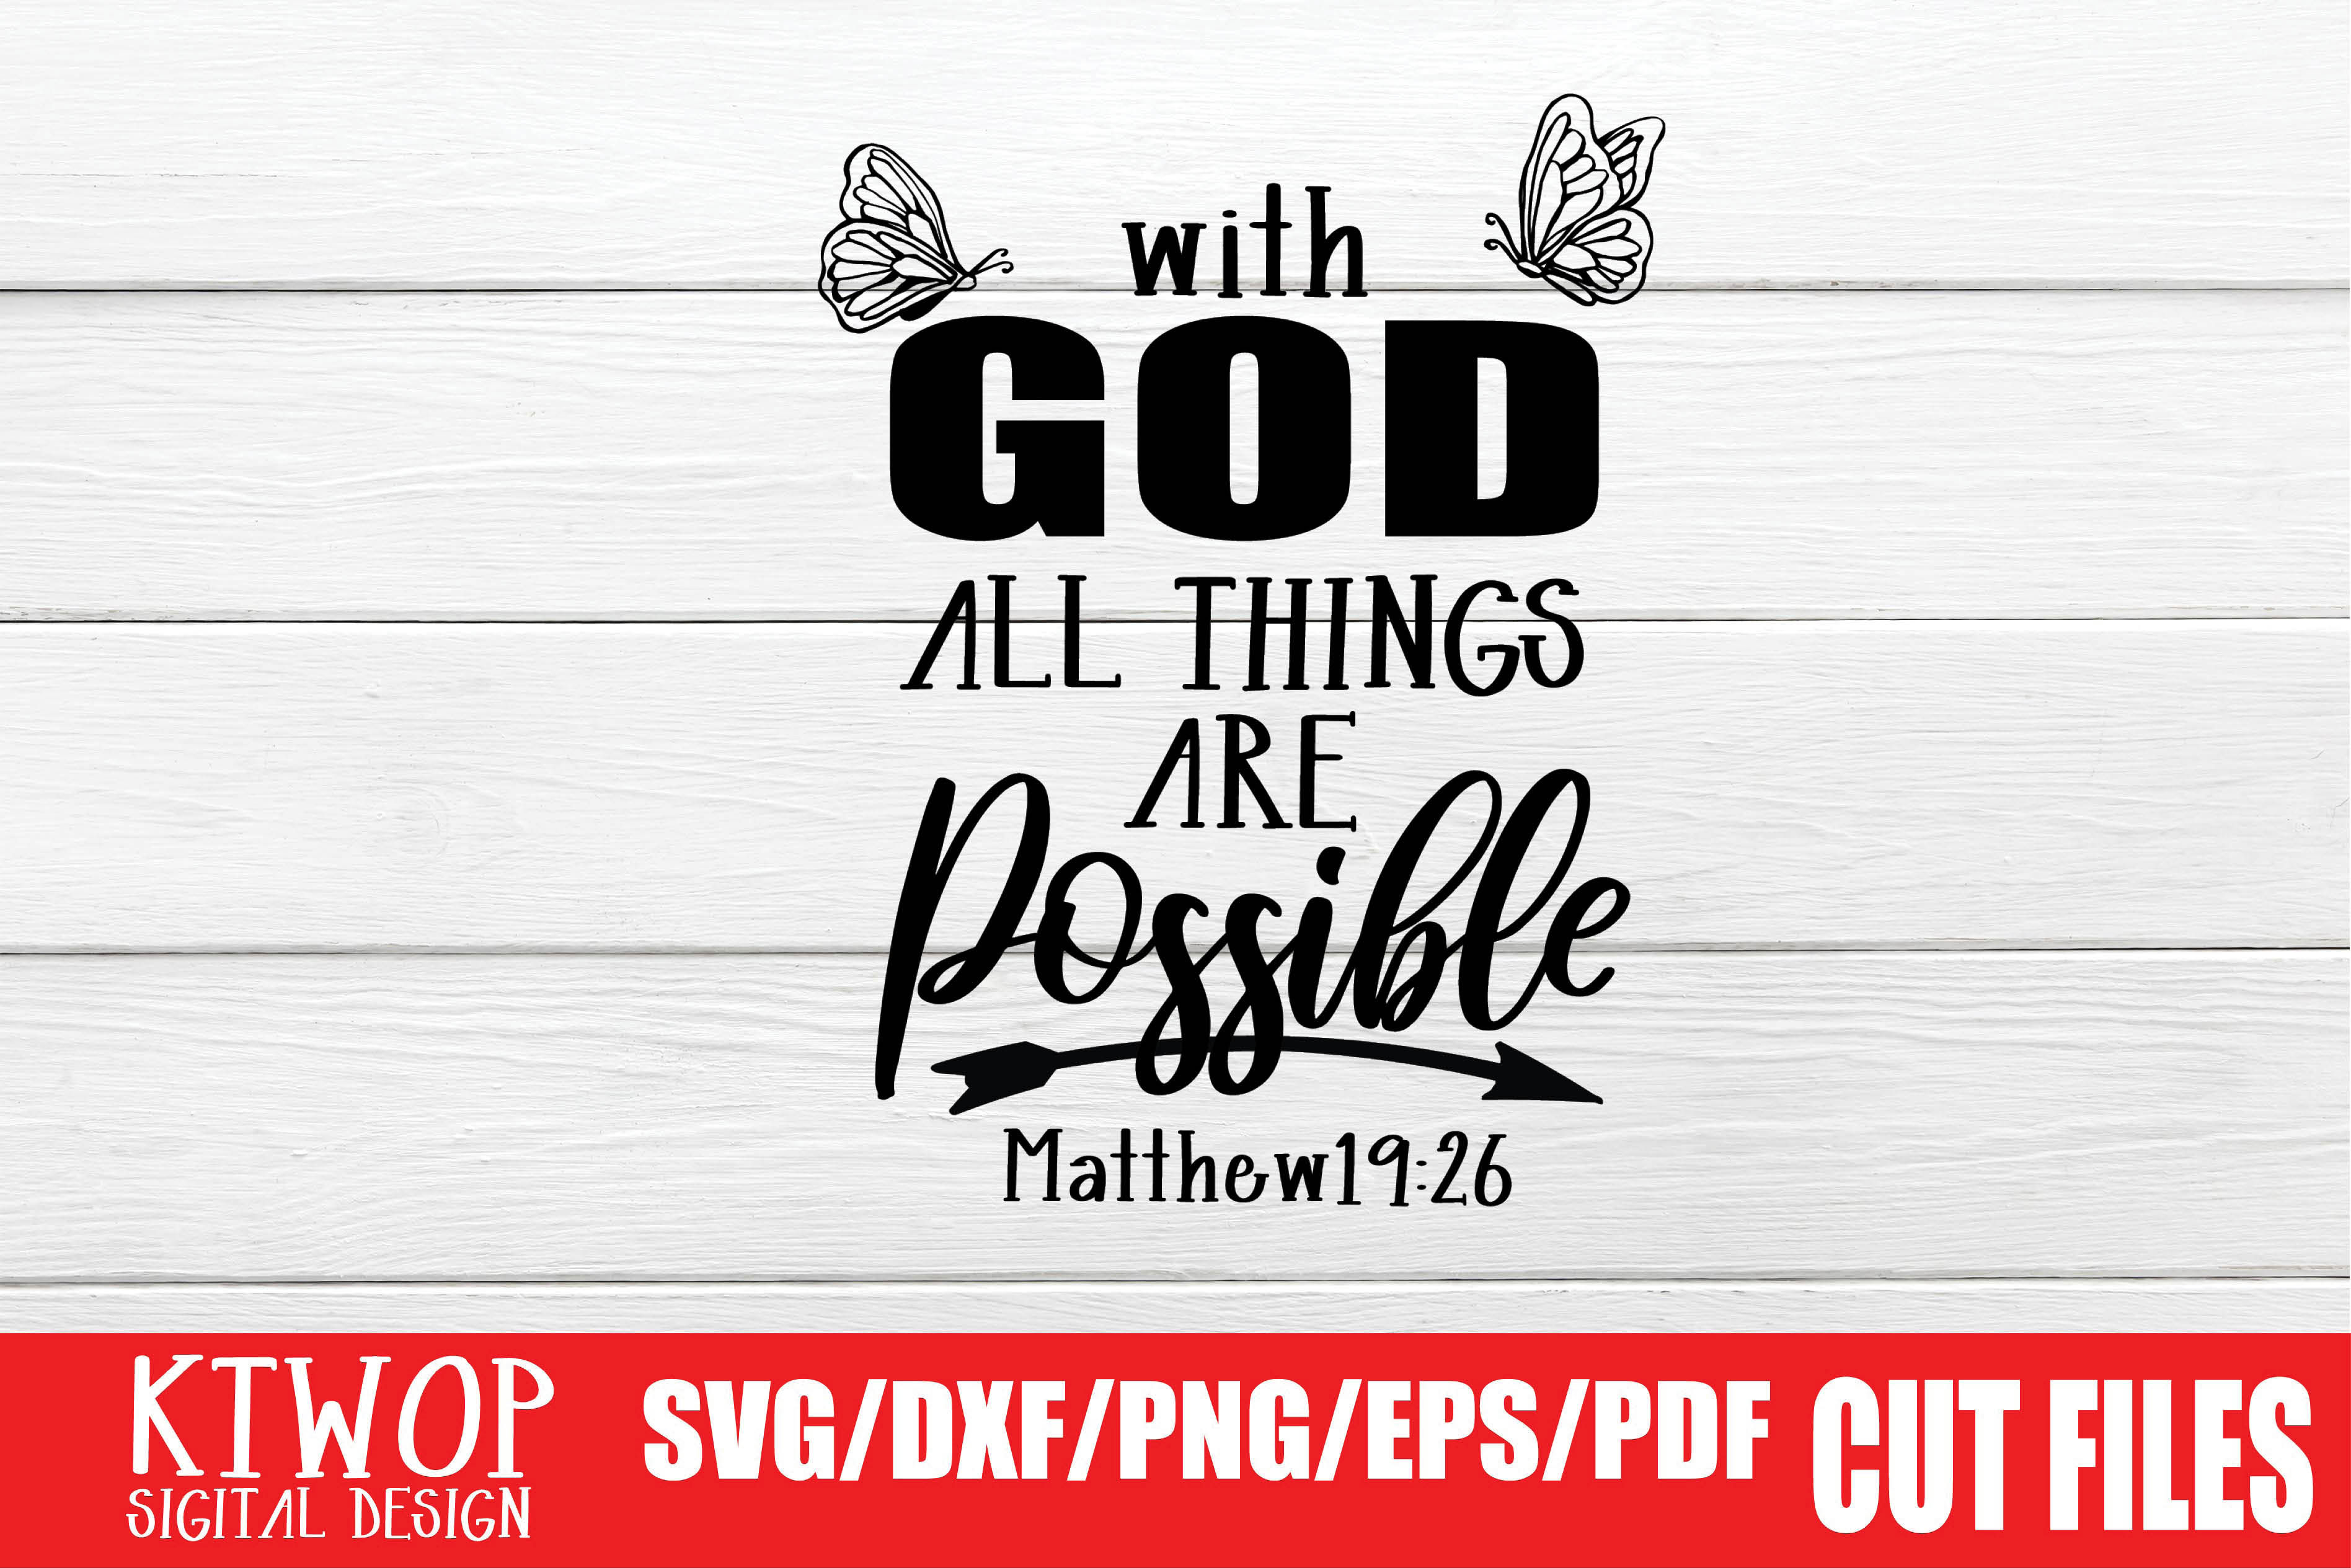 Download Free With God All Things Are Possible Graphic By Ktwop Creative for Cricut Explore, Silhouette and other cutting machines.